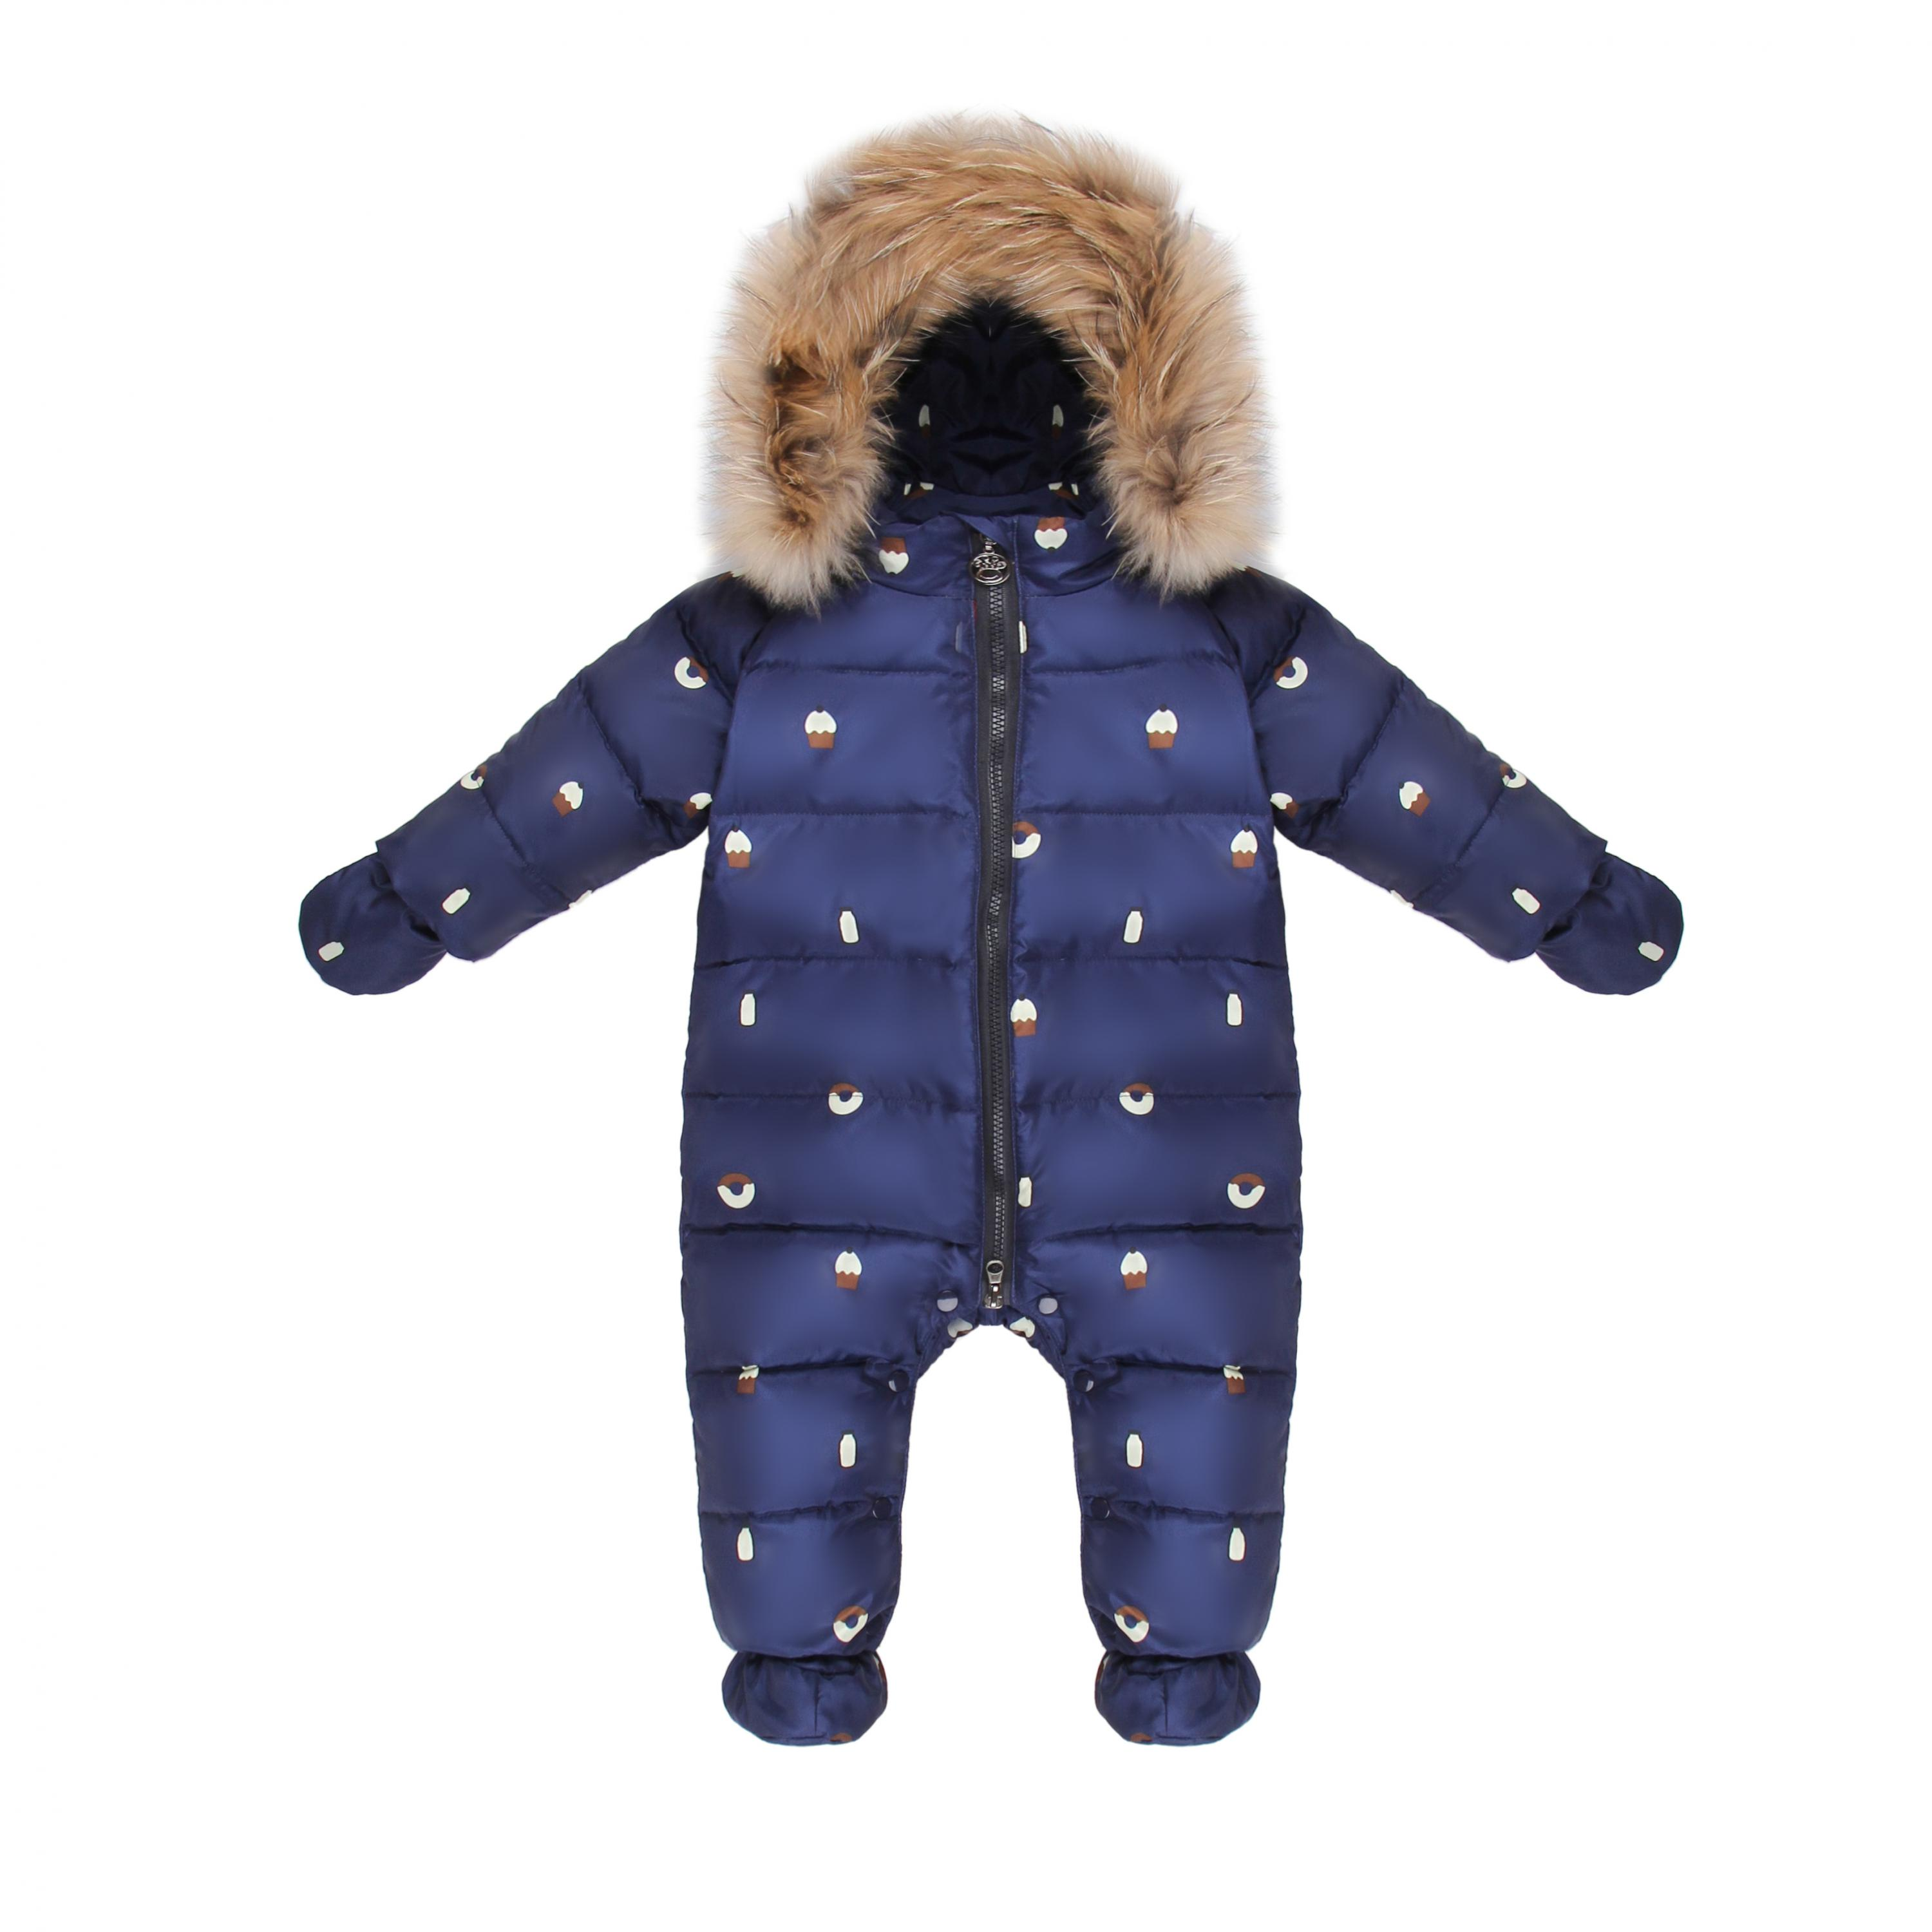 017cc5281ff9 2018 fashion winter coats for baby girls clothes 5 colours baby ...